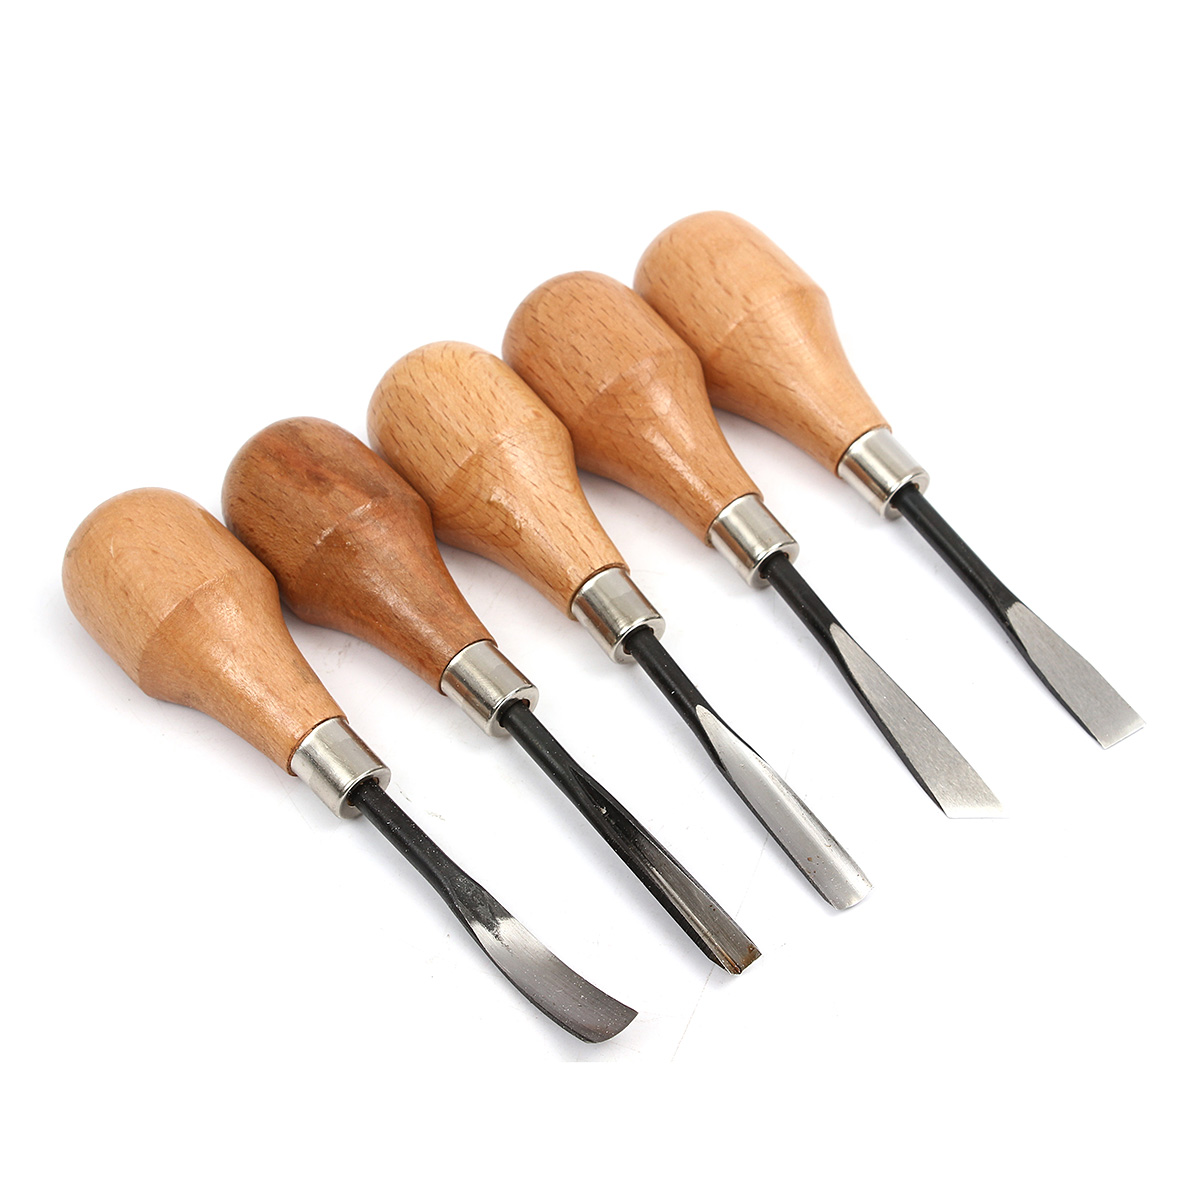 5pcs Set Hand Wood C